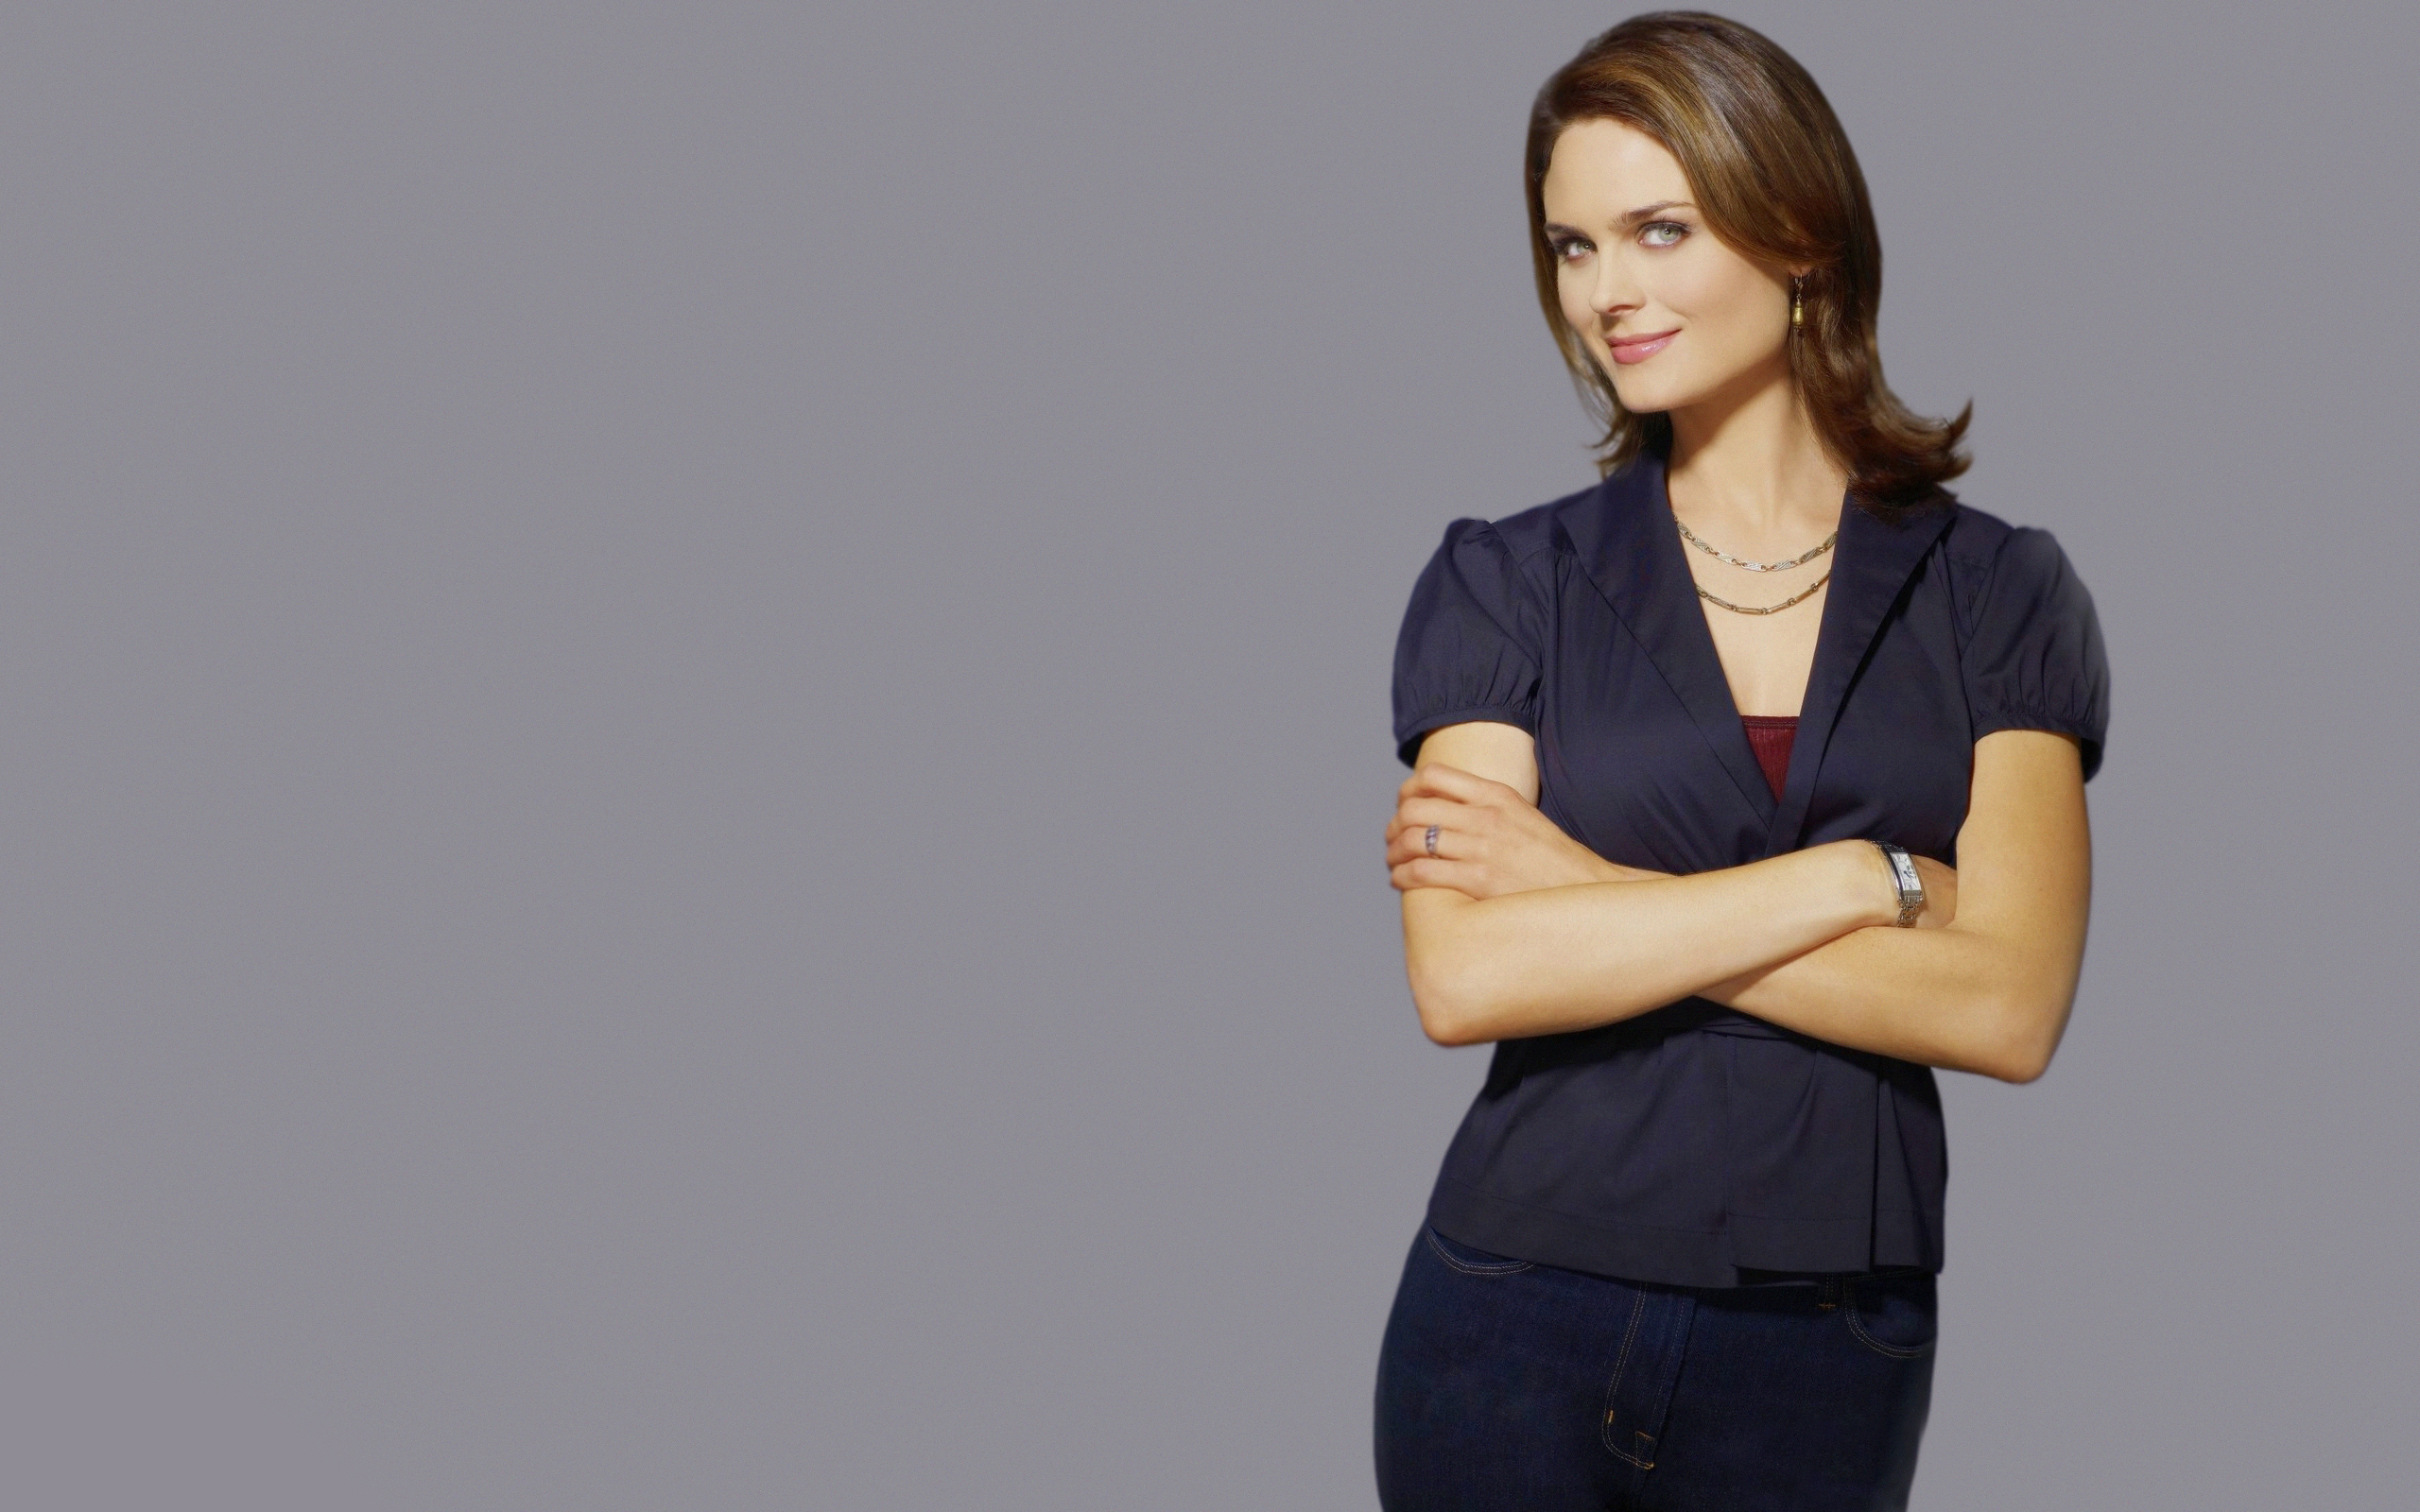 emily deschanel wallpaper background 61118